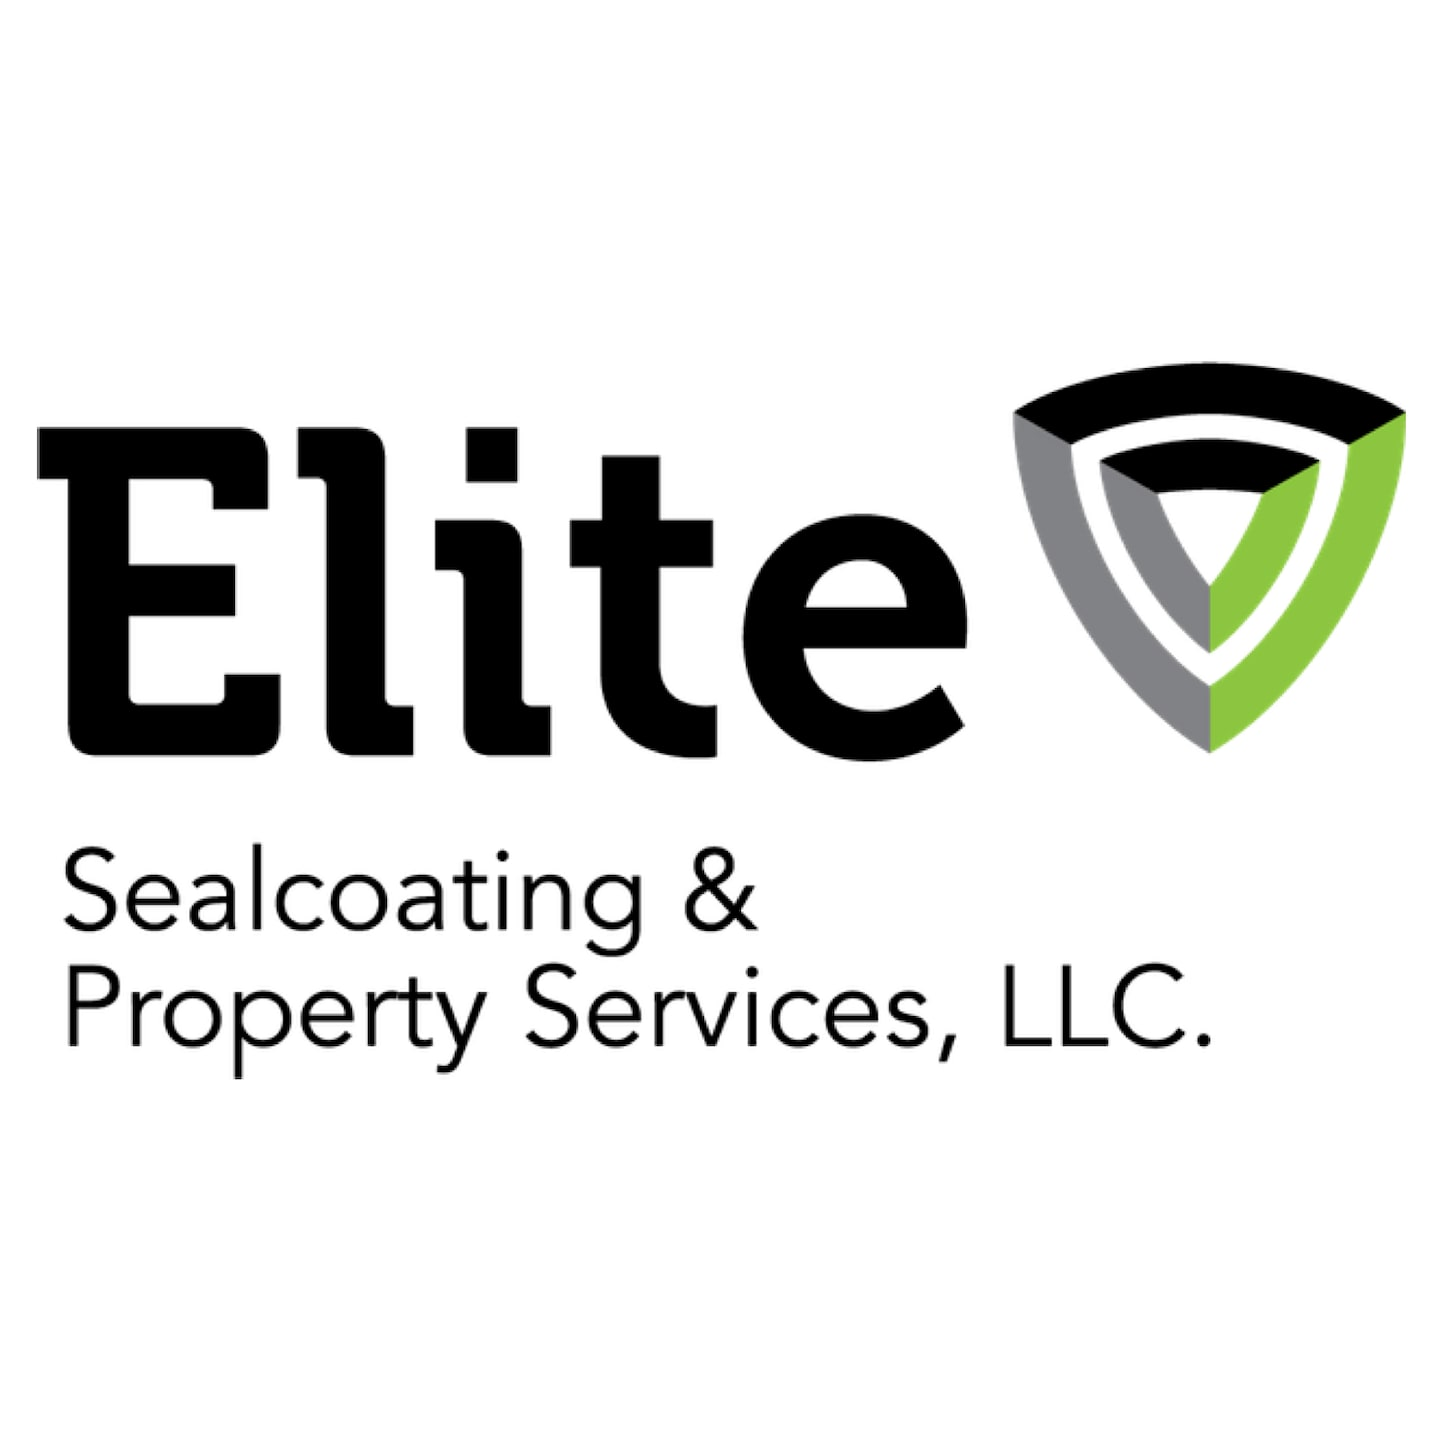 Elite Sealcoating & Property Services, LLC